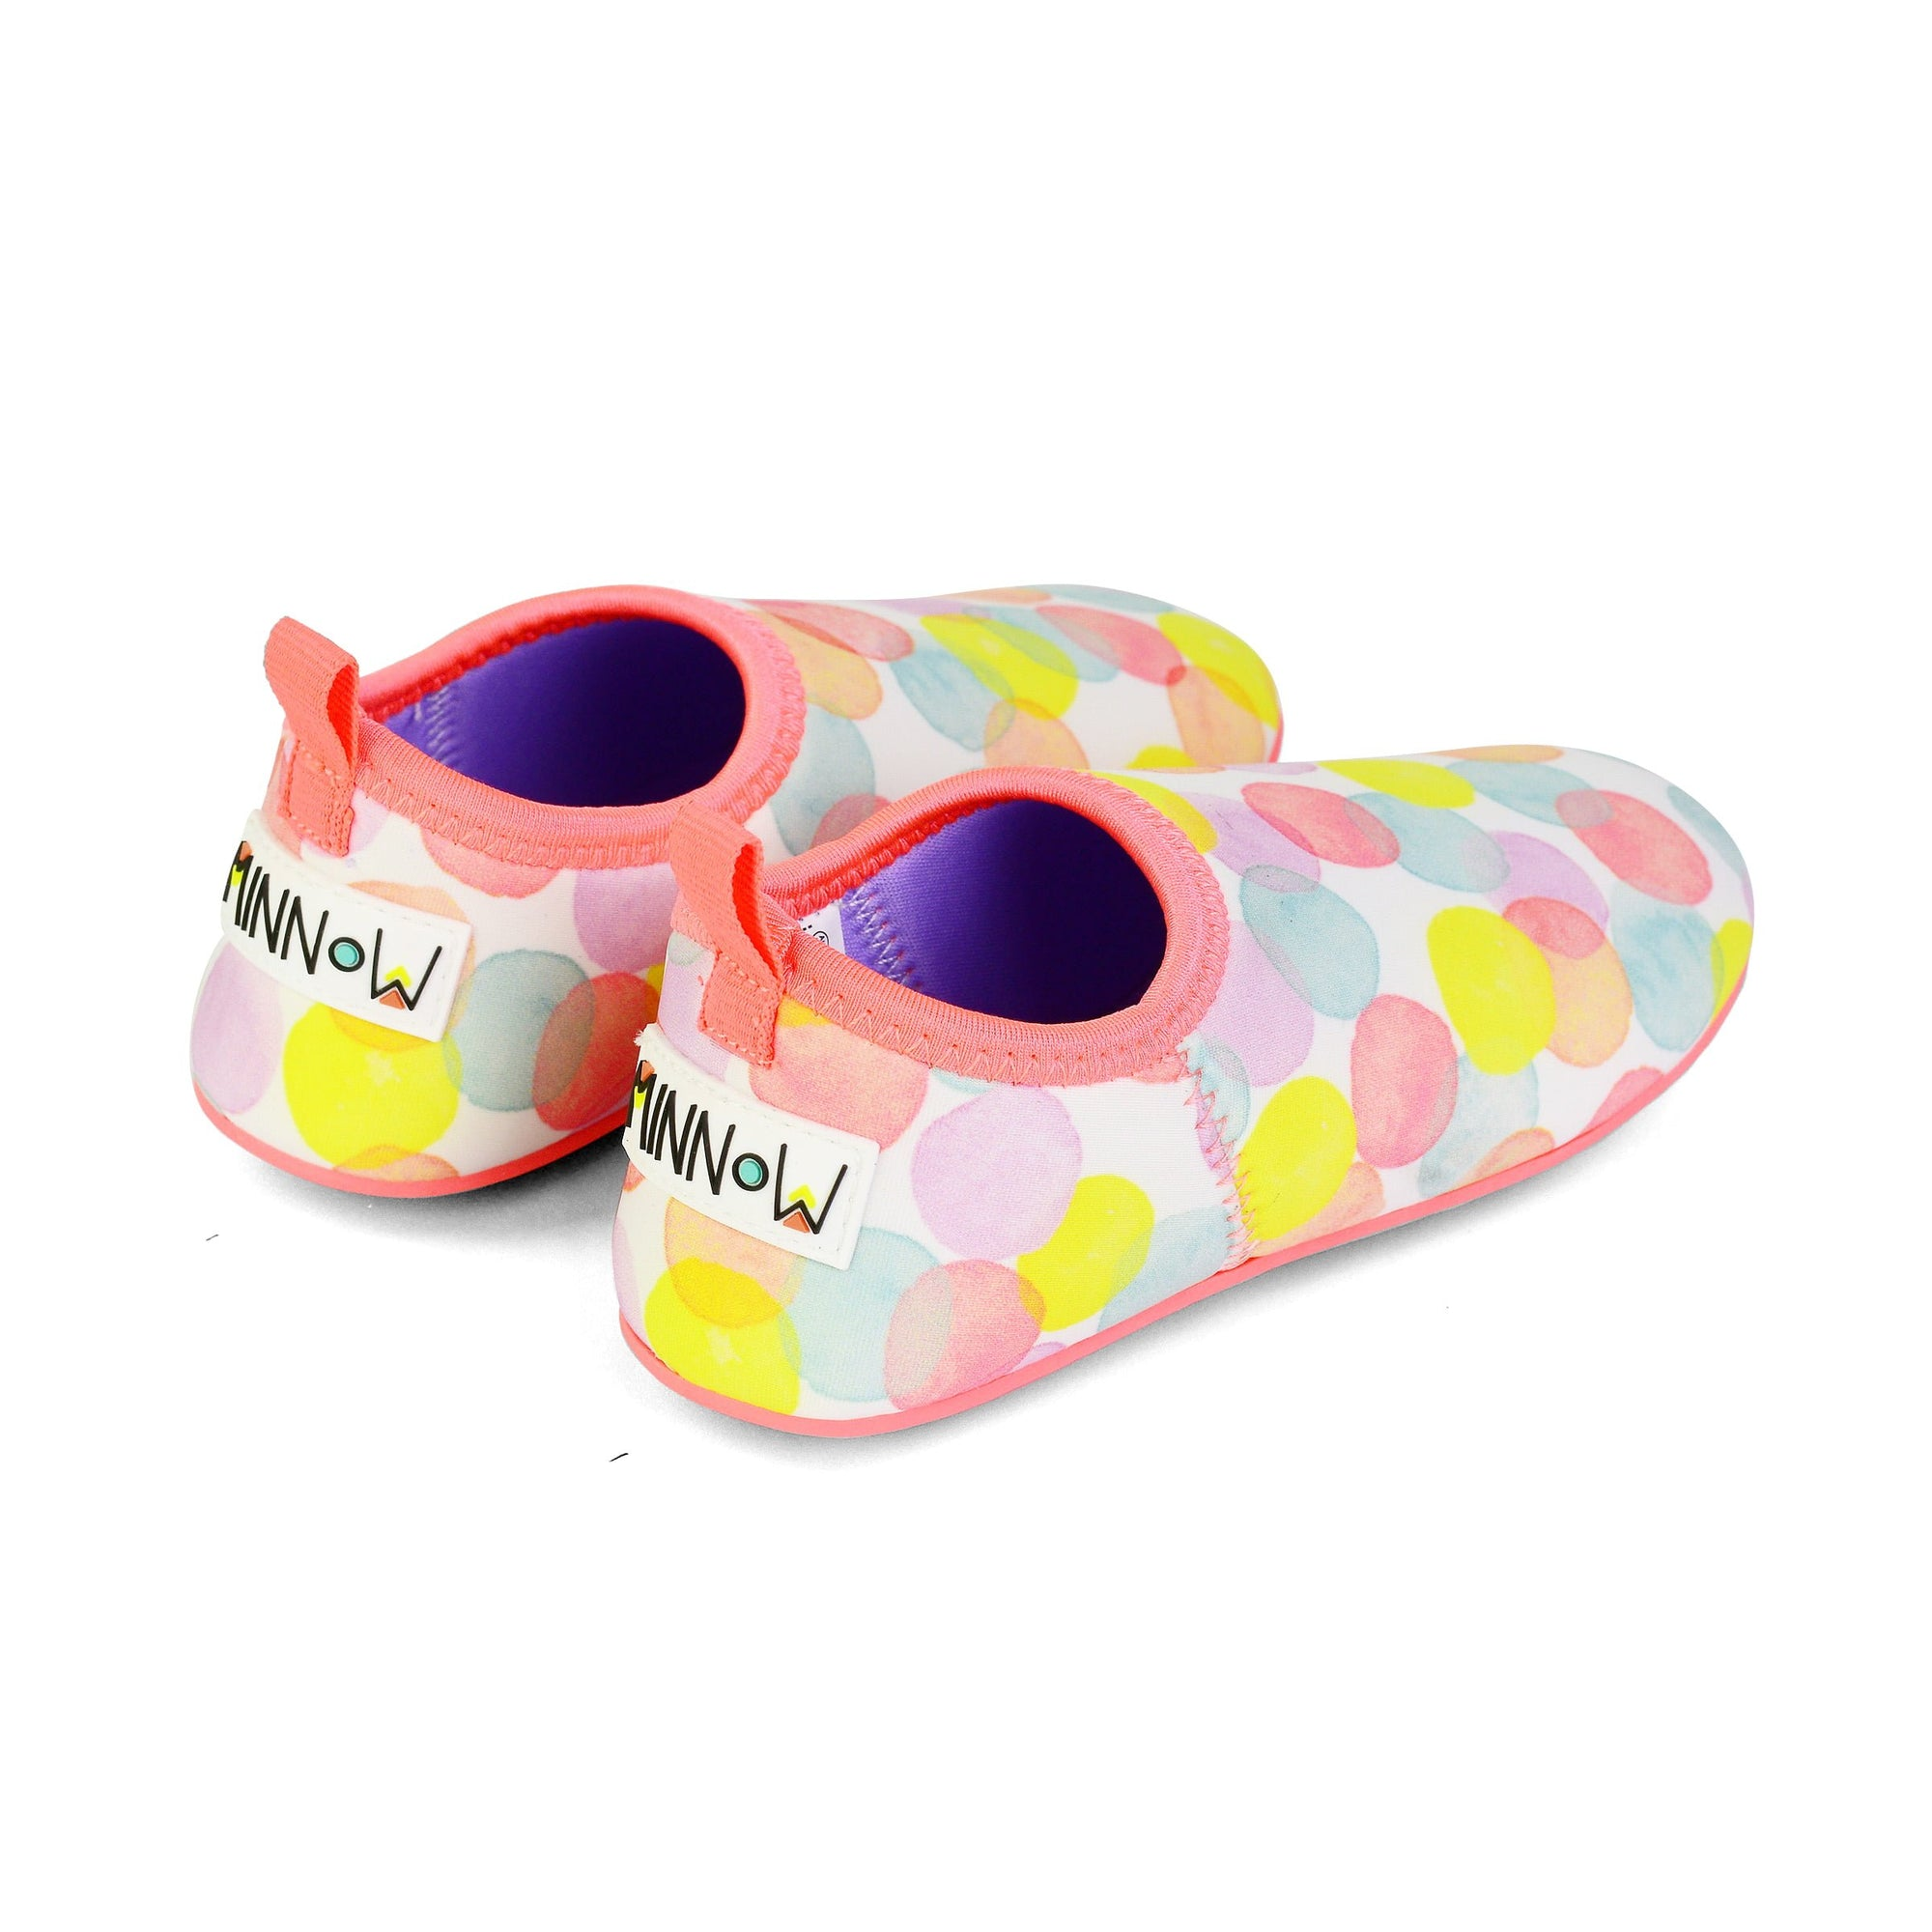 Minnow Flex Sole Swimmable Shoes - Dotty